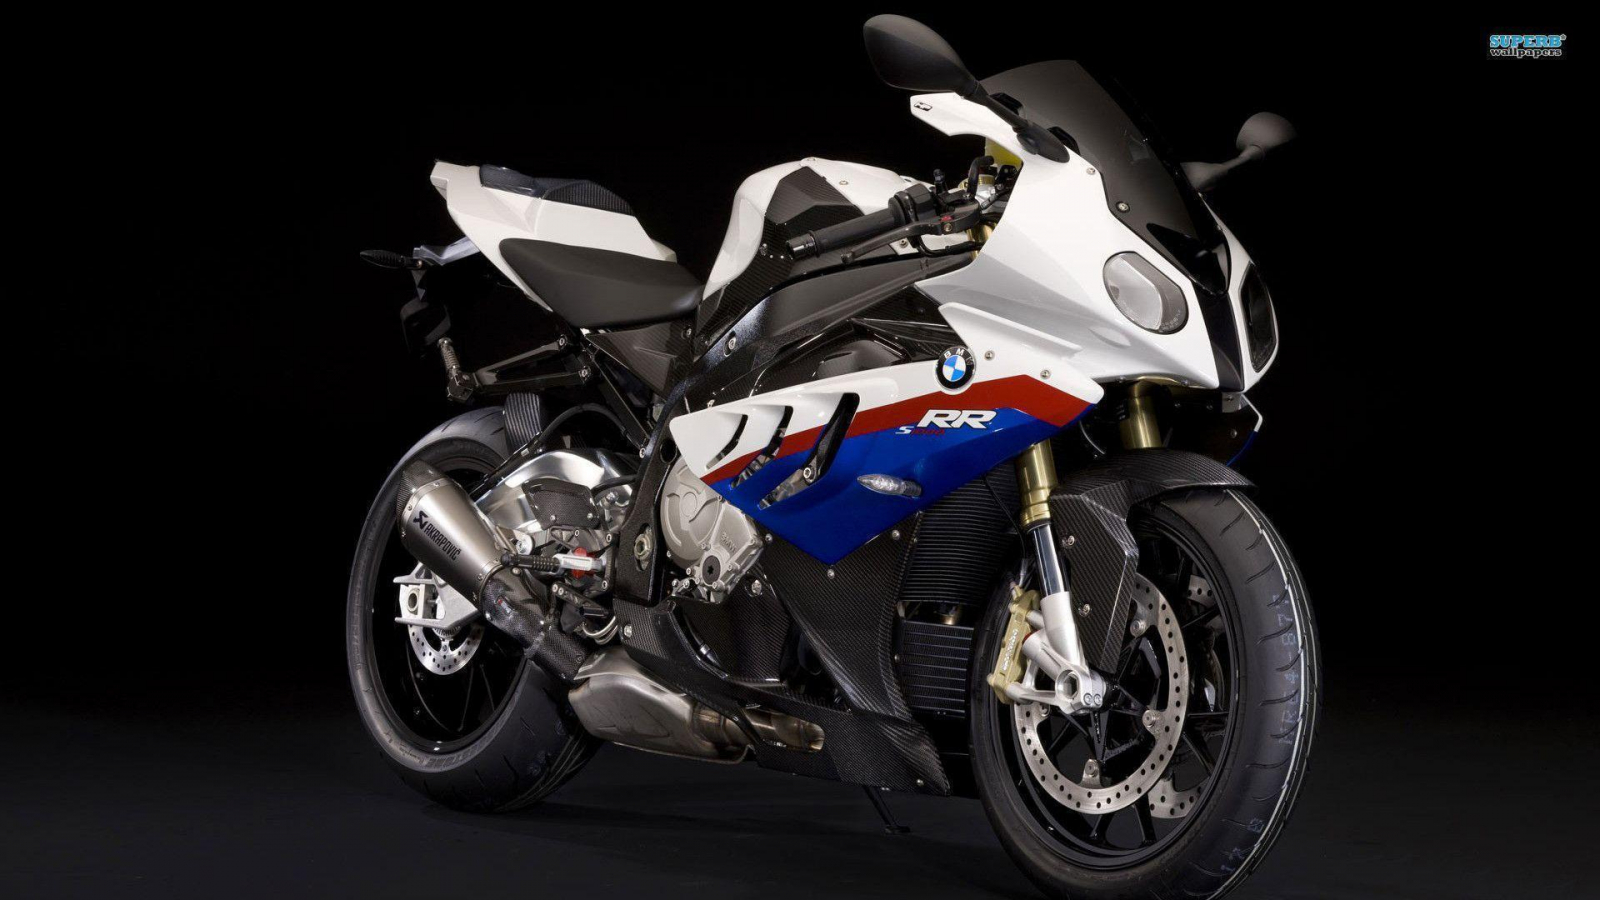 Free download BMW S1000RR Wallpapers 1920x1080 for your ...